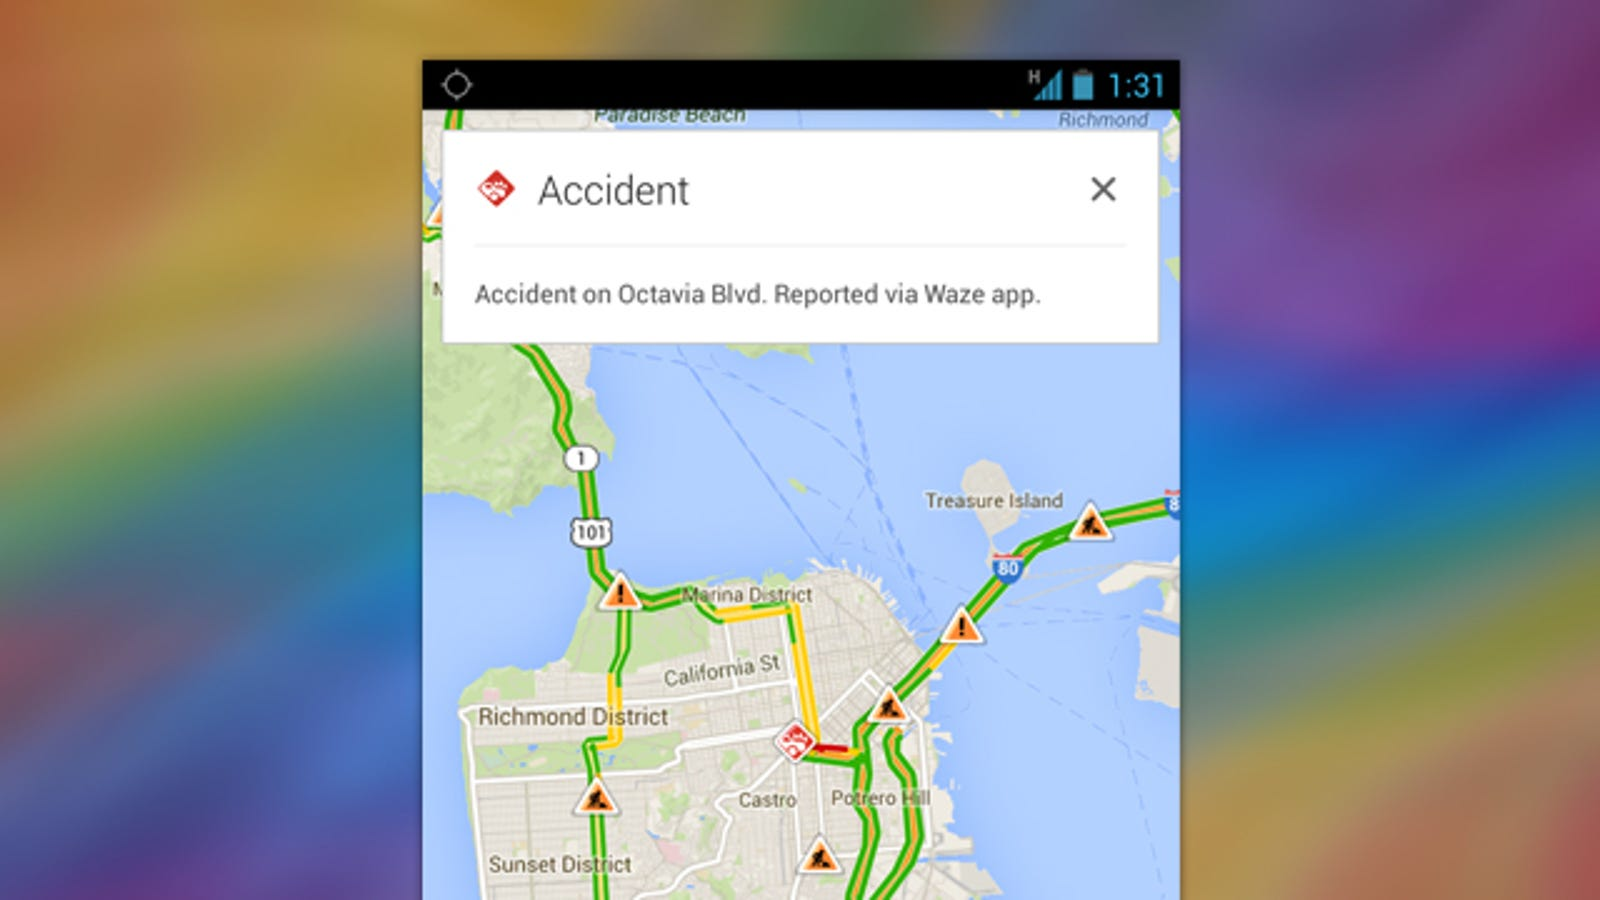 Google Maps Adds Incident Reports from Waze, Waze Gets